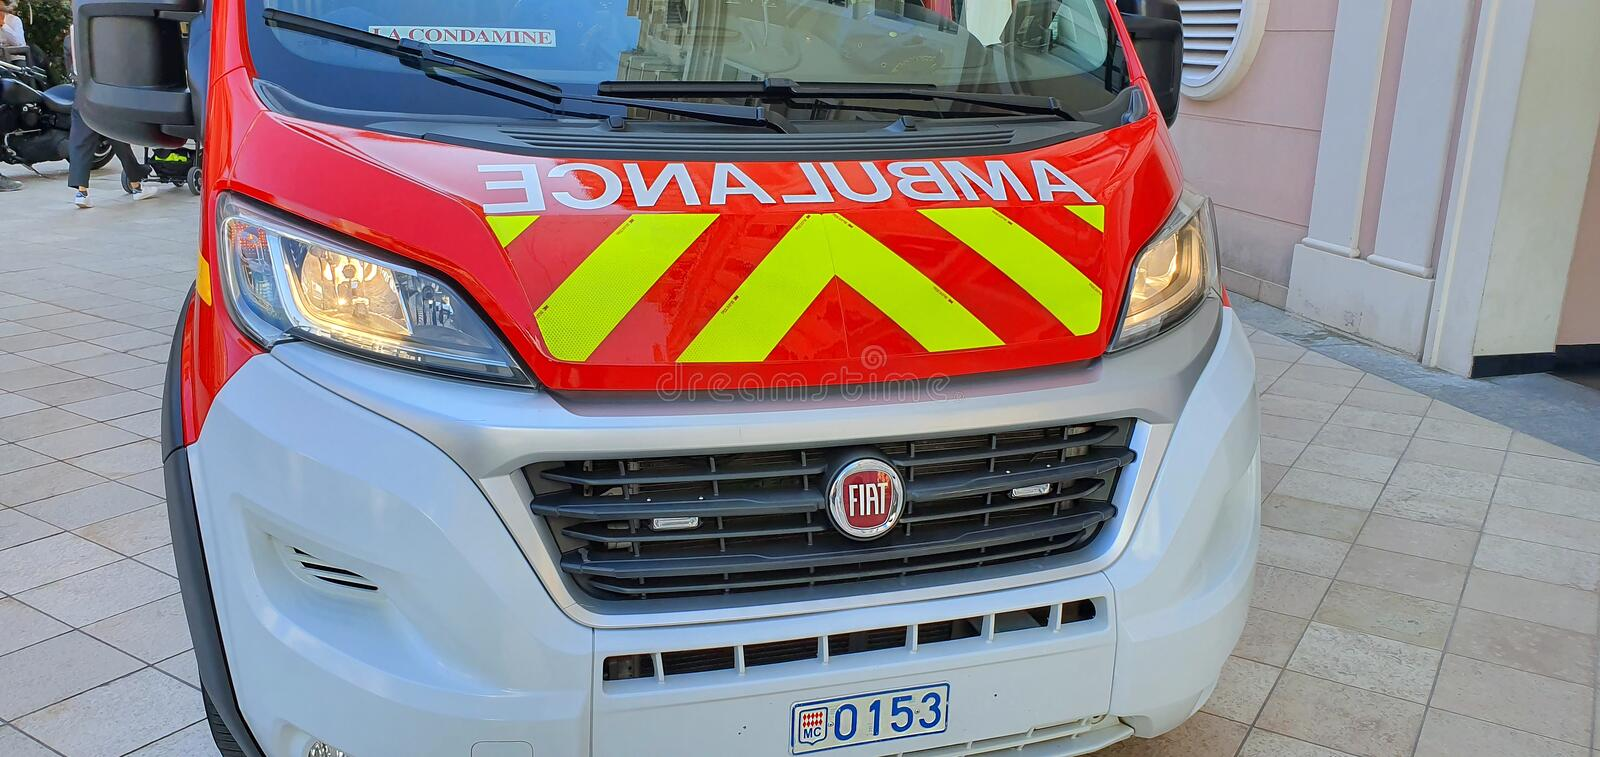 French Fire Department Ambulance In Monte-Carlo Monaco. Monte-Carlo, Monaco - March 28,  French Fire Department Ambulance Front View Van Parked In The Street Of stock photos